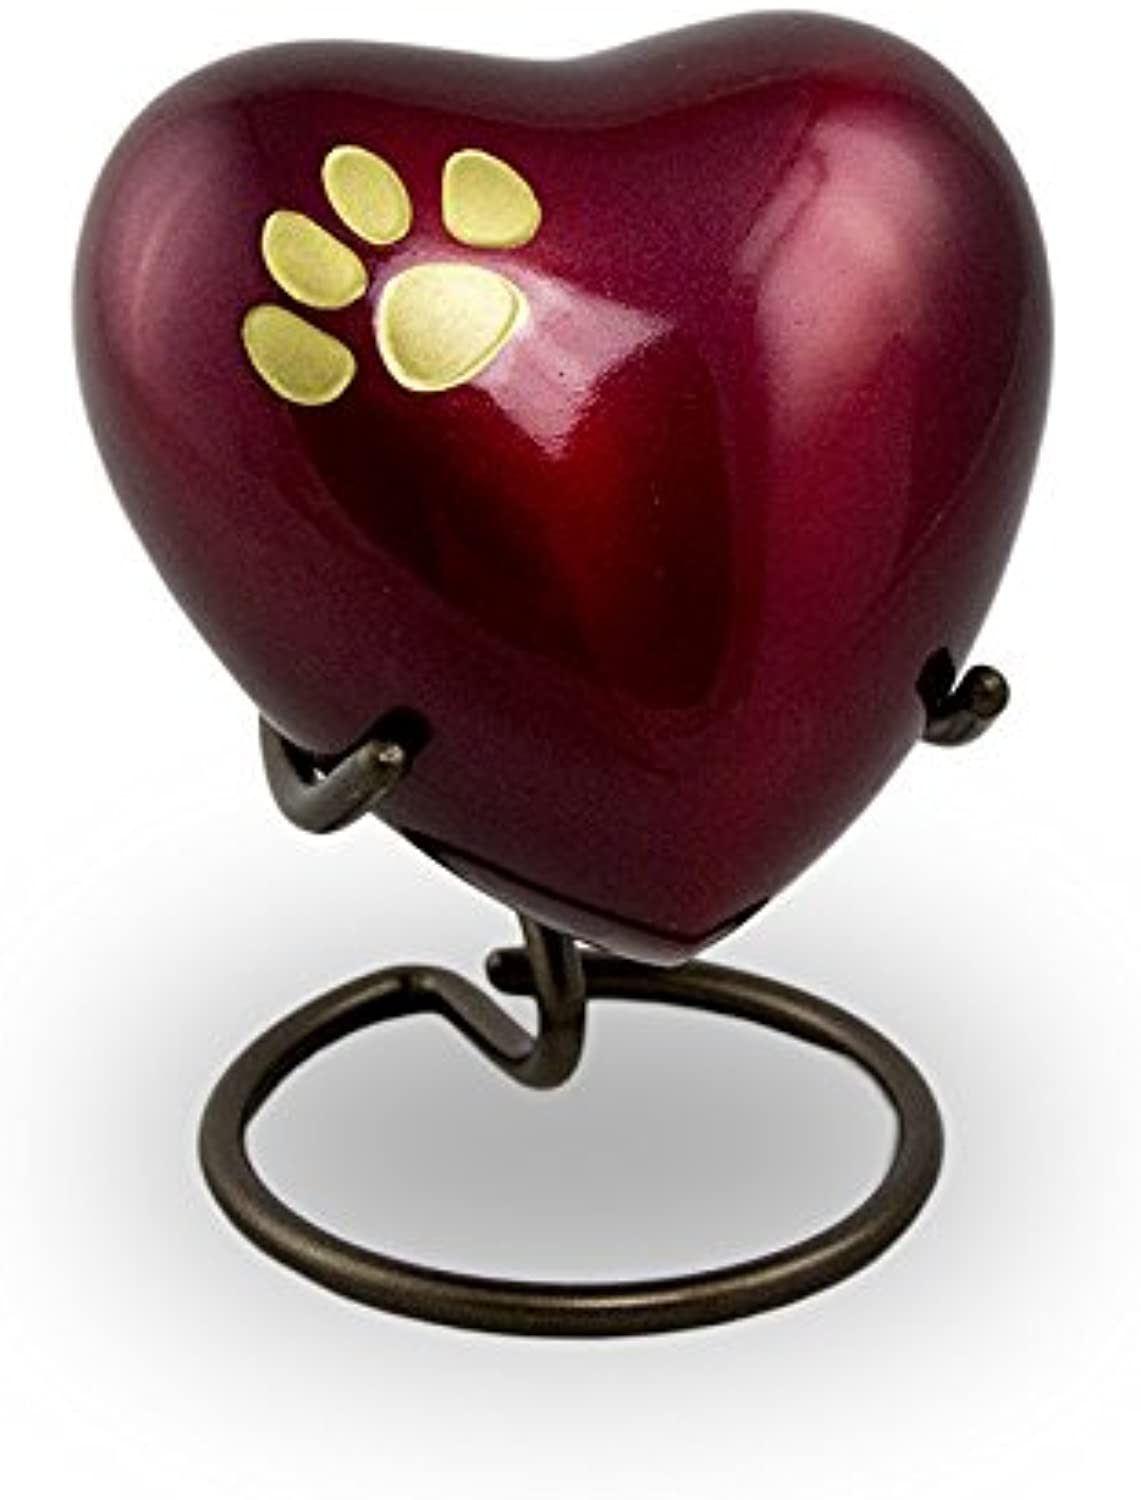 OneWorld Memorials Pet Paw Bronze Pet Urn  Extra Small  Holds Up to 3 Cubic Inches of Ashes  Crimson Red Pet Cremation Urn for Ashes  Engraving Sold Separately